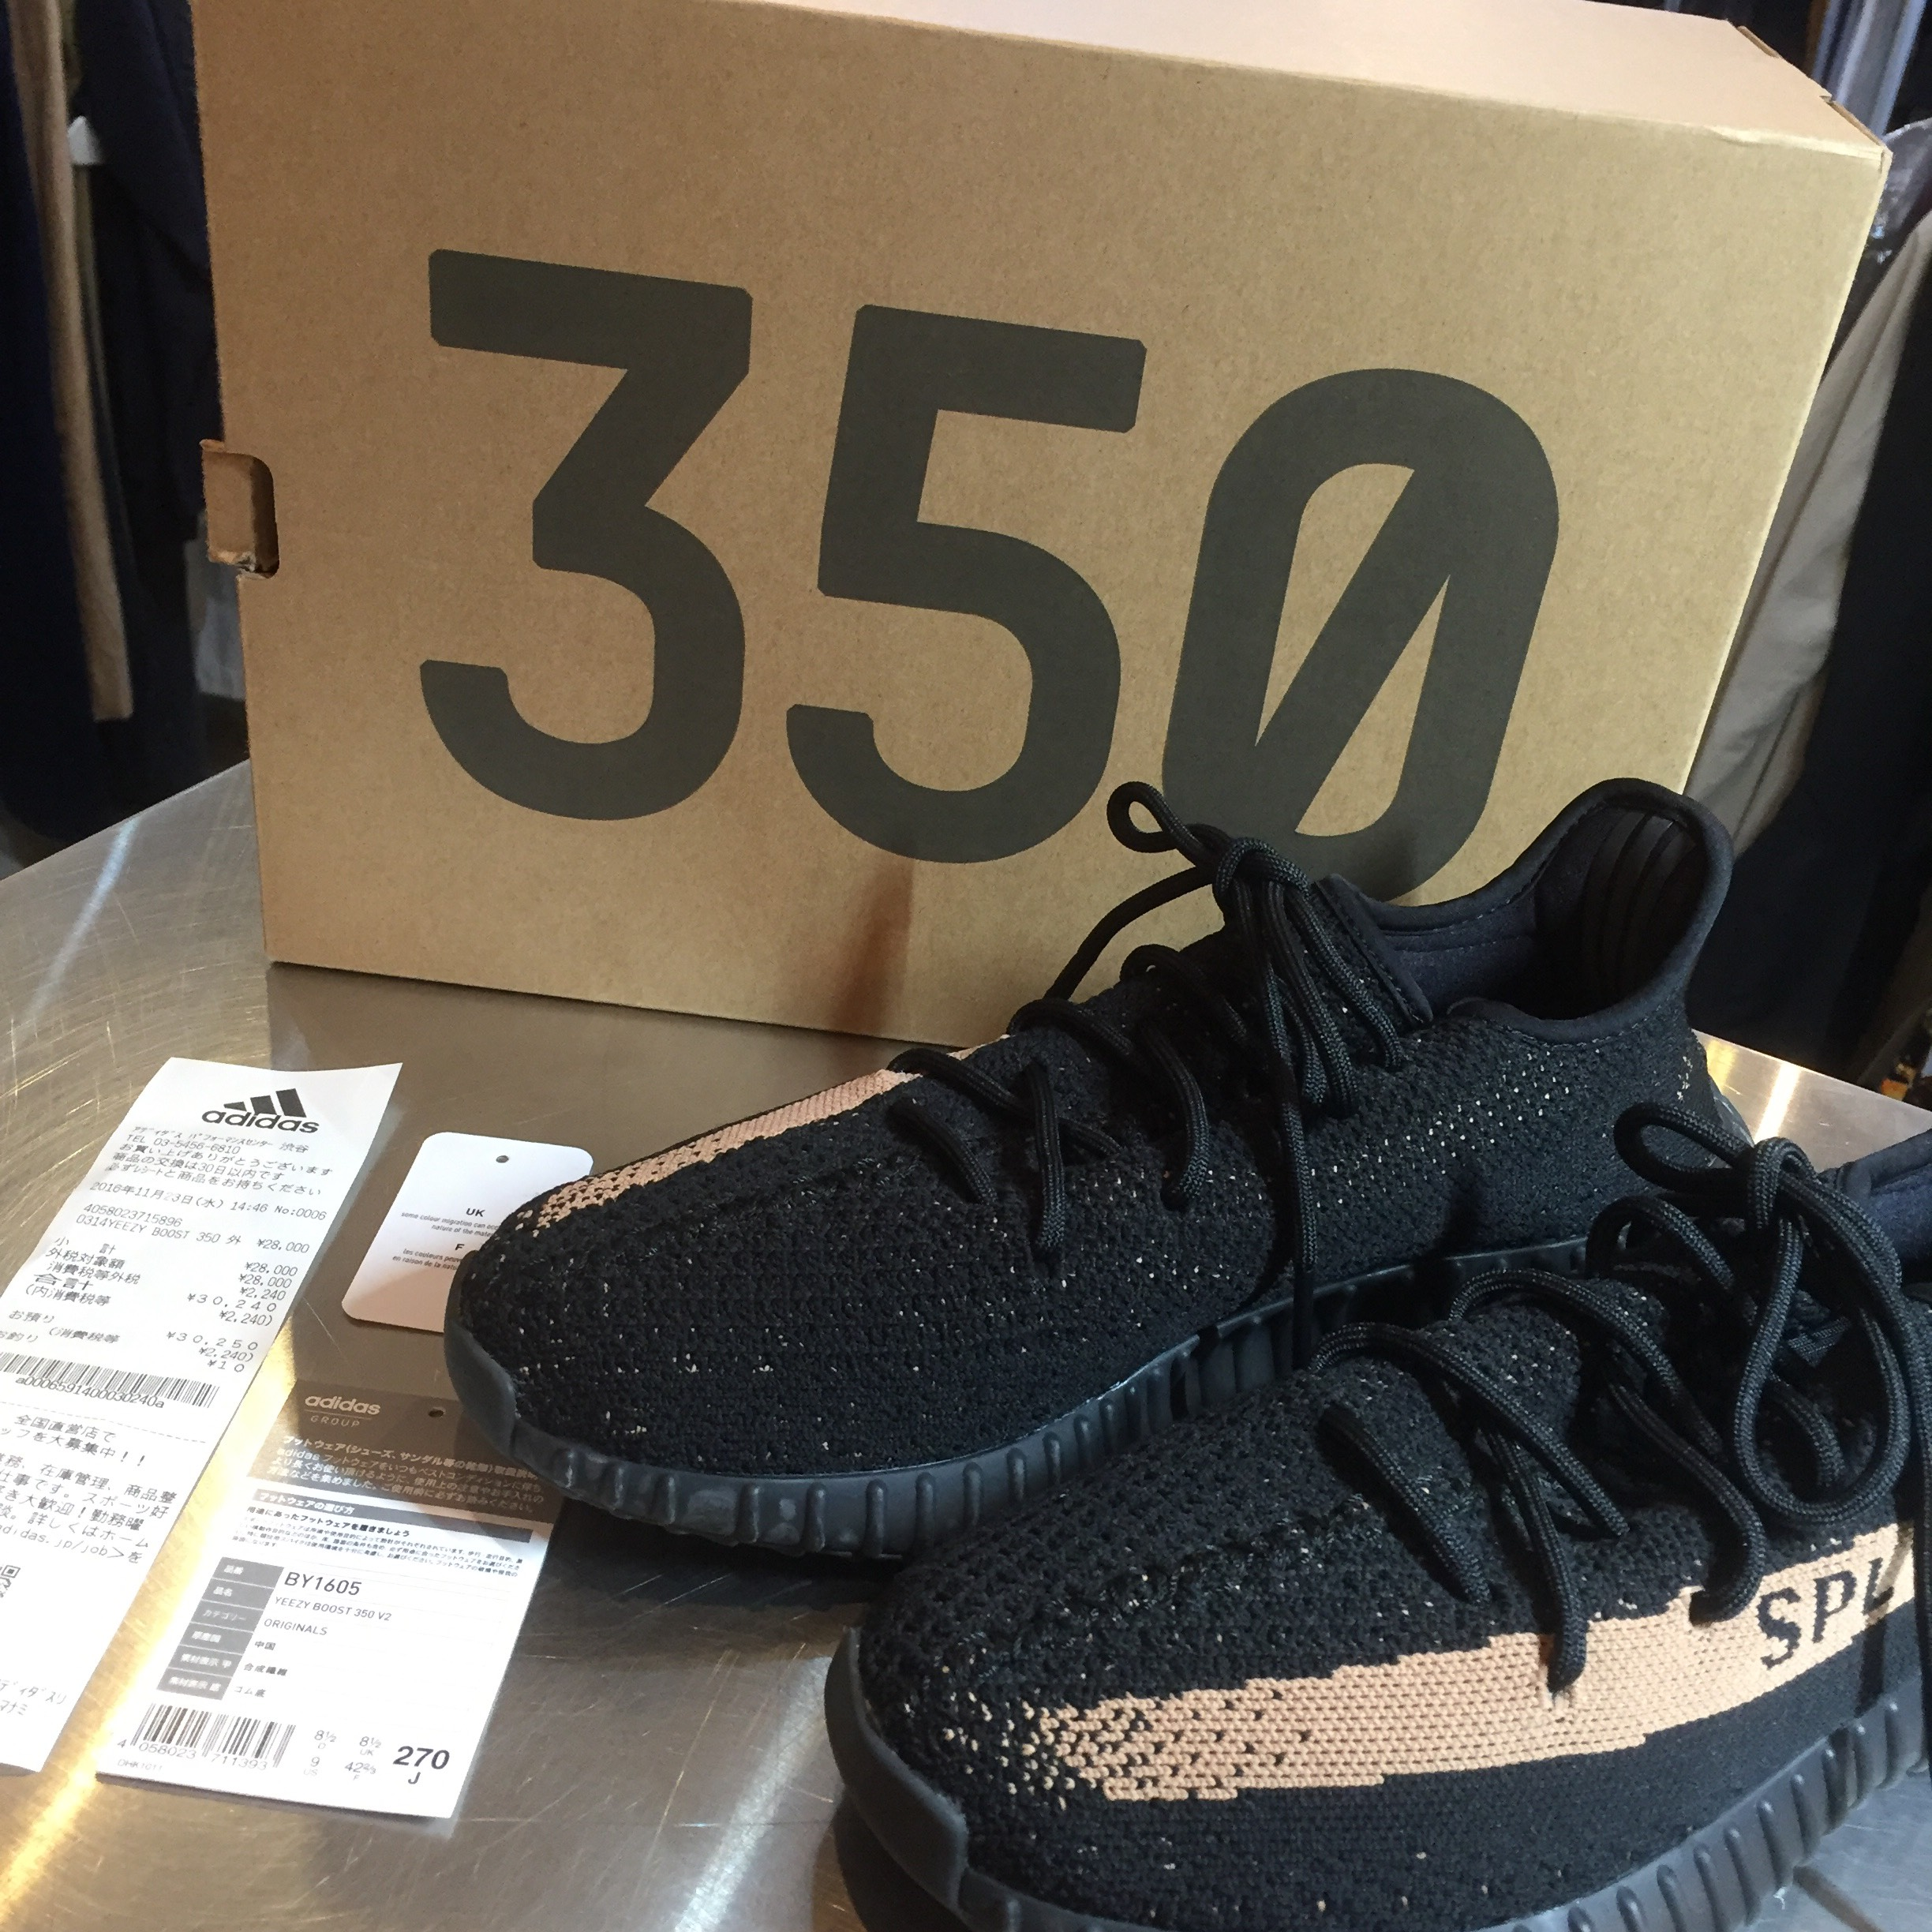 adidas Yeezy Boost 350 V2 Black Copper BY1605 27cm